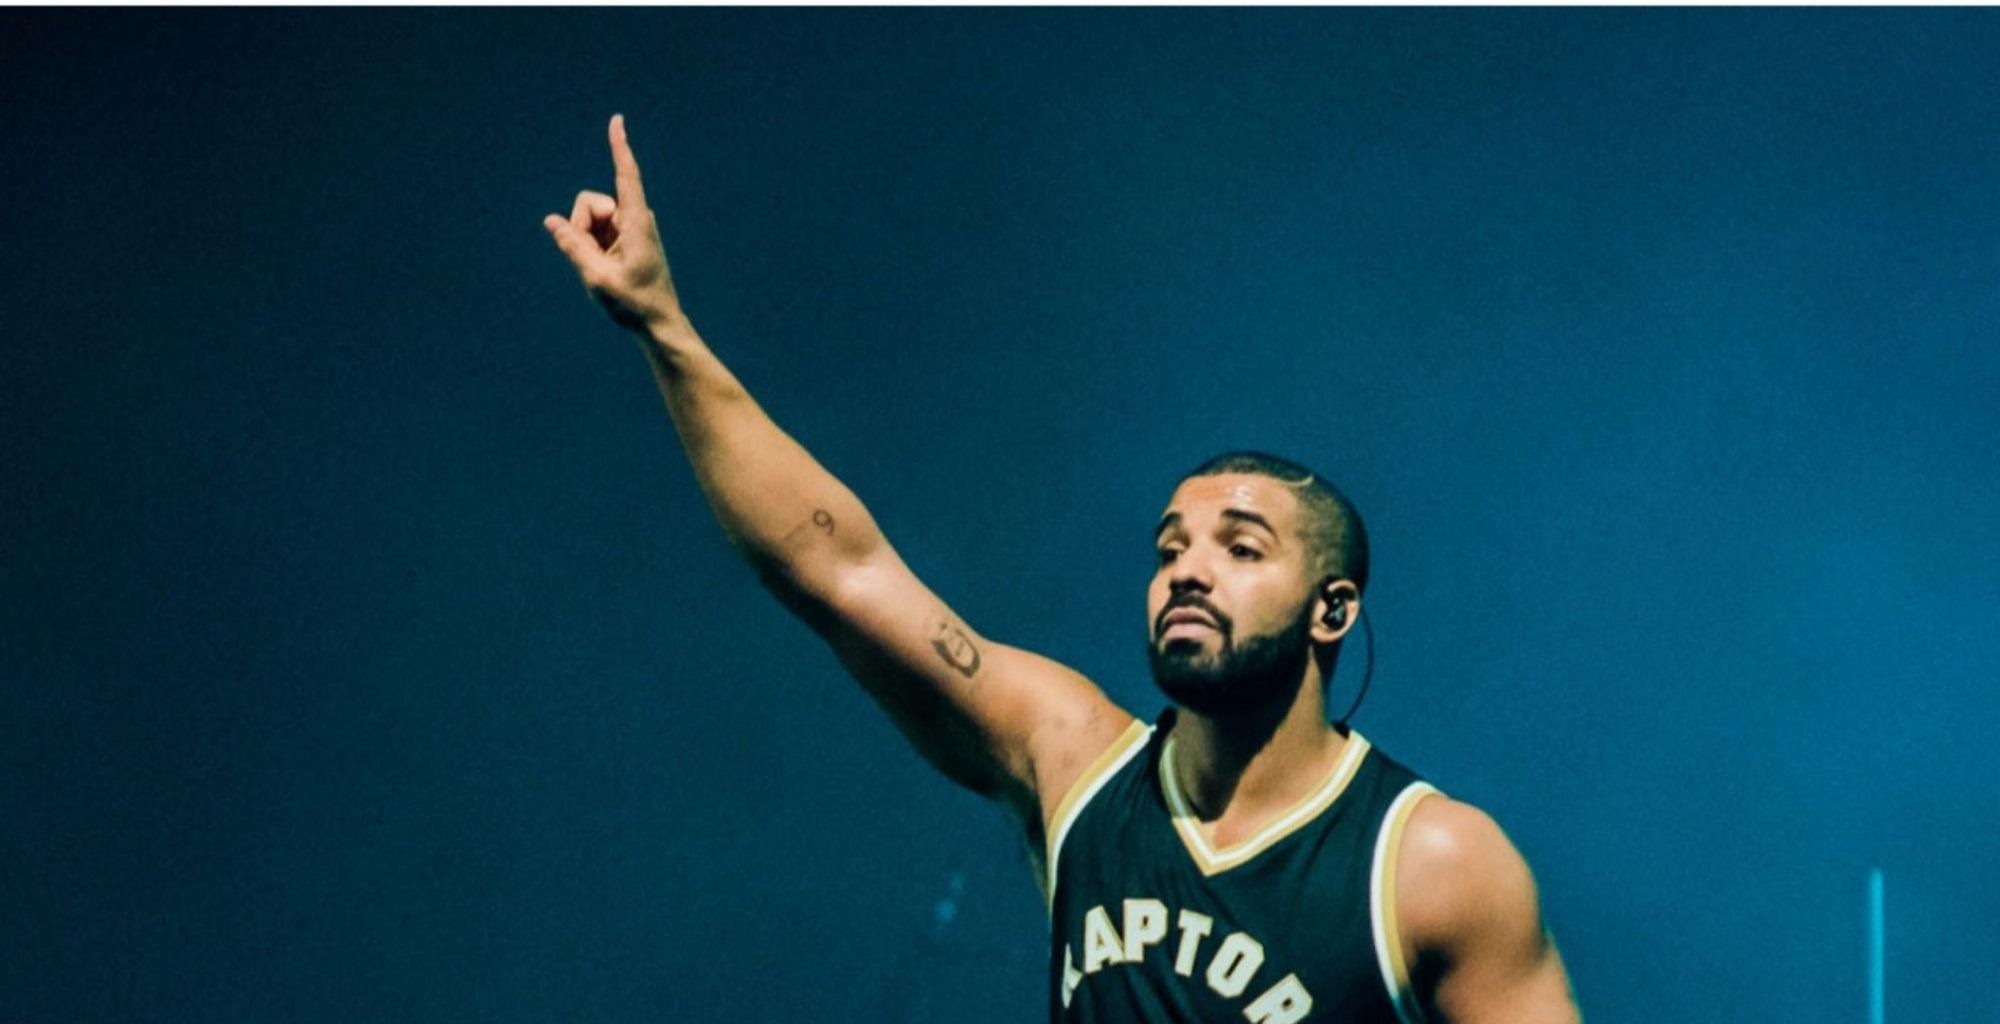 Drake Shares Photo Where He Is Training With Pro NBA Coach Chris Matthews To Improve His Skills -- Should Steph Curry And Kevin Durant Be Worried?